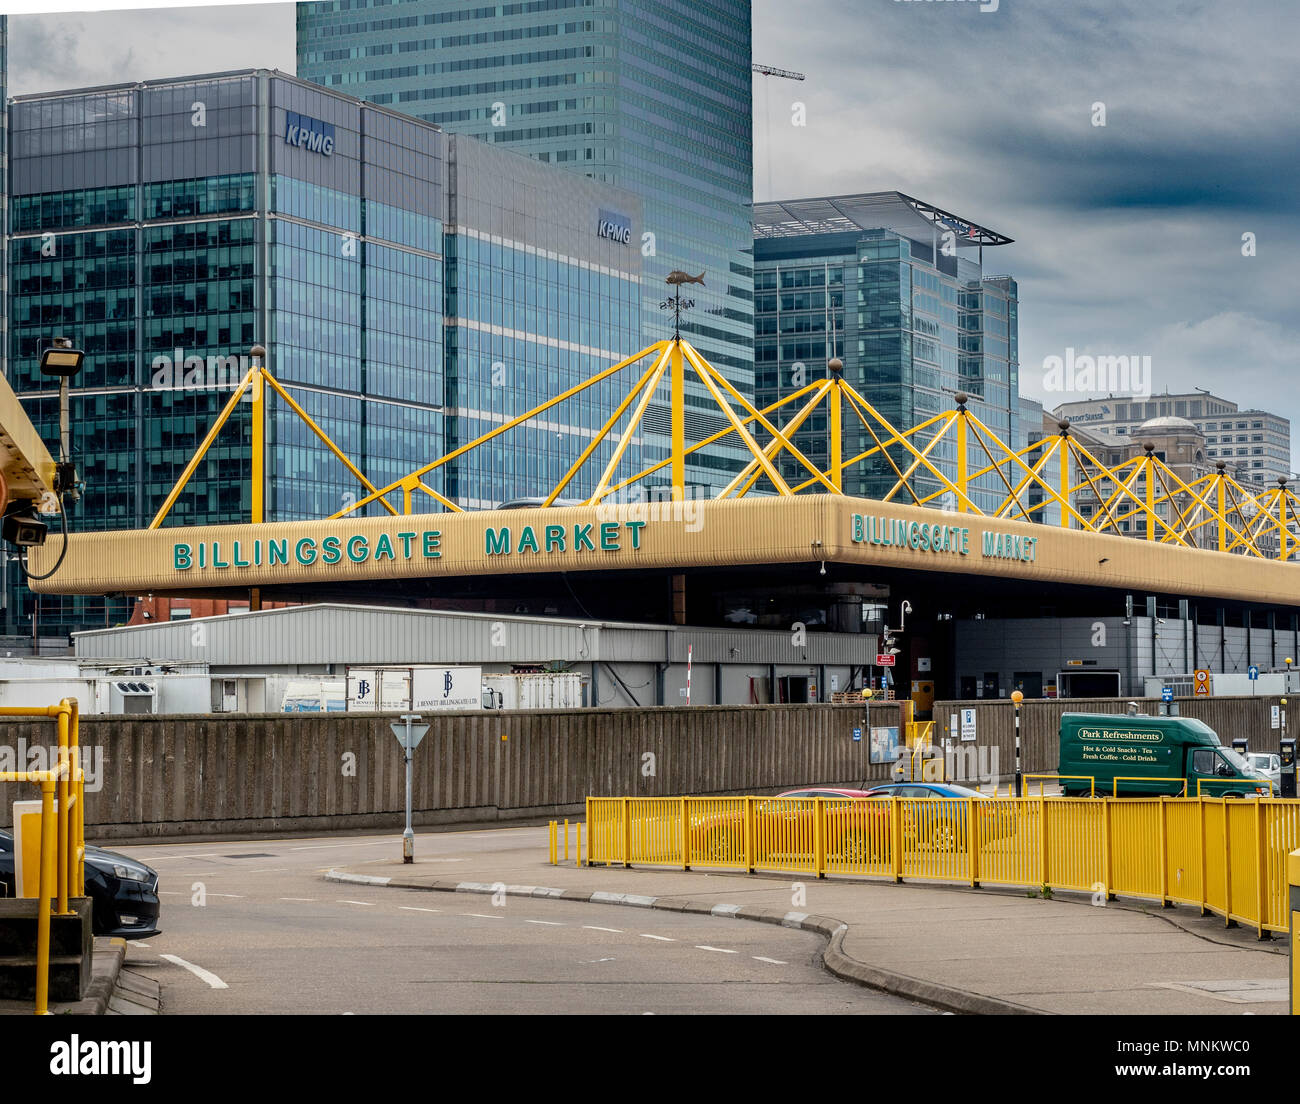 Billingsgate Market with Canary Wharf buildings in background, Poplar, Isle of Dogs, London, UK. - Stock Image